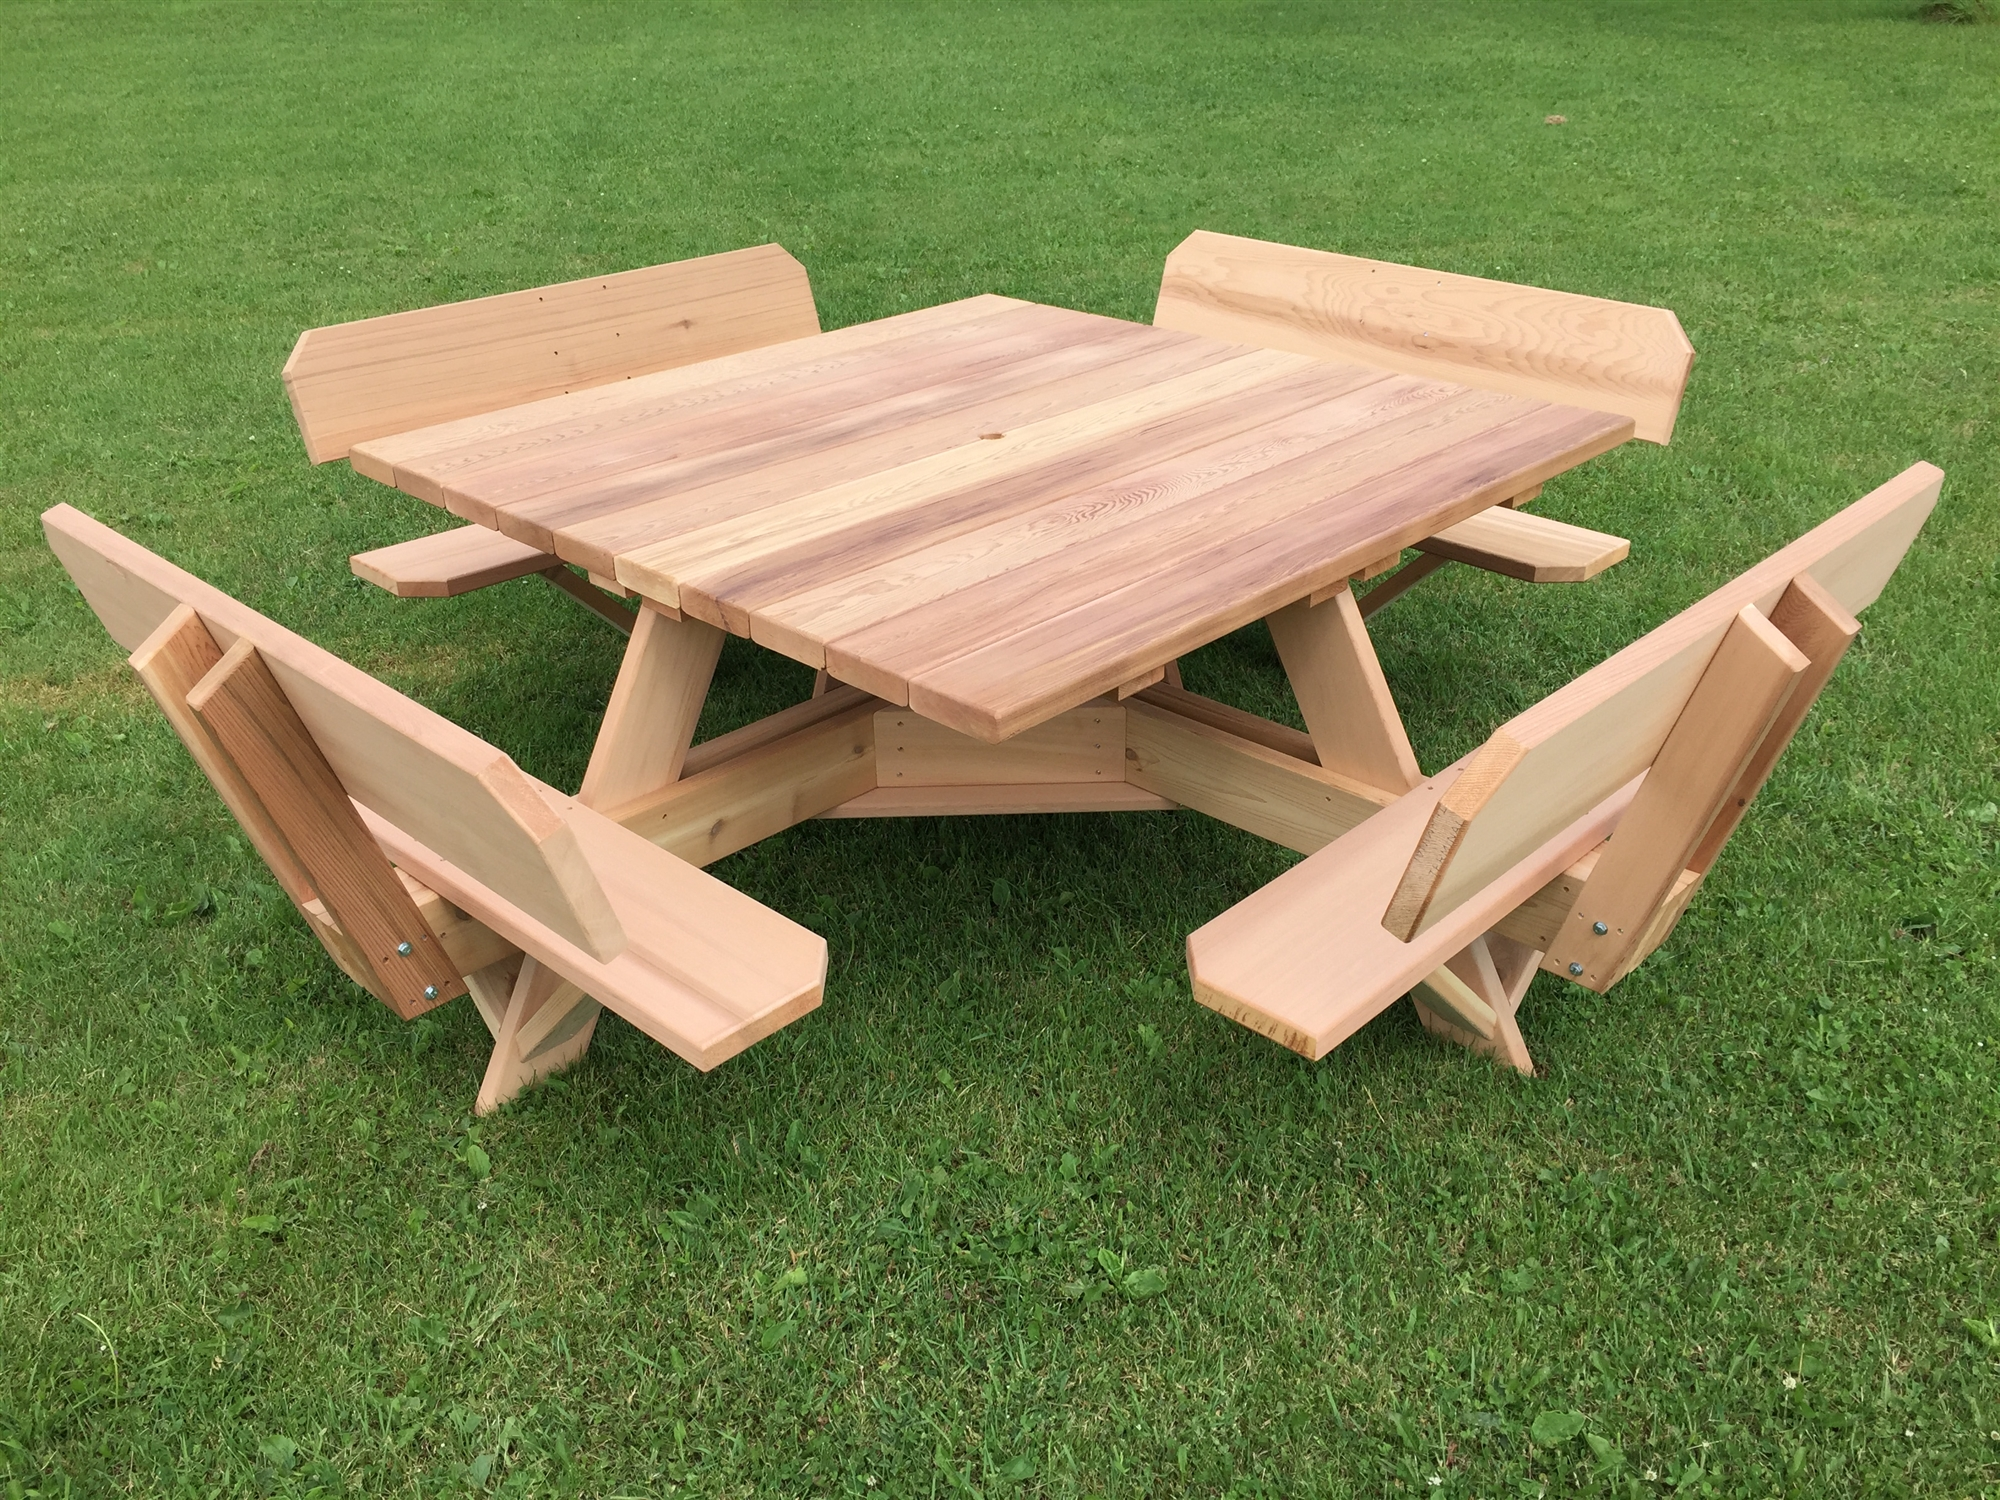 Western Red Cedar Picnic Table With Attached Backs - Square picnic table with benches